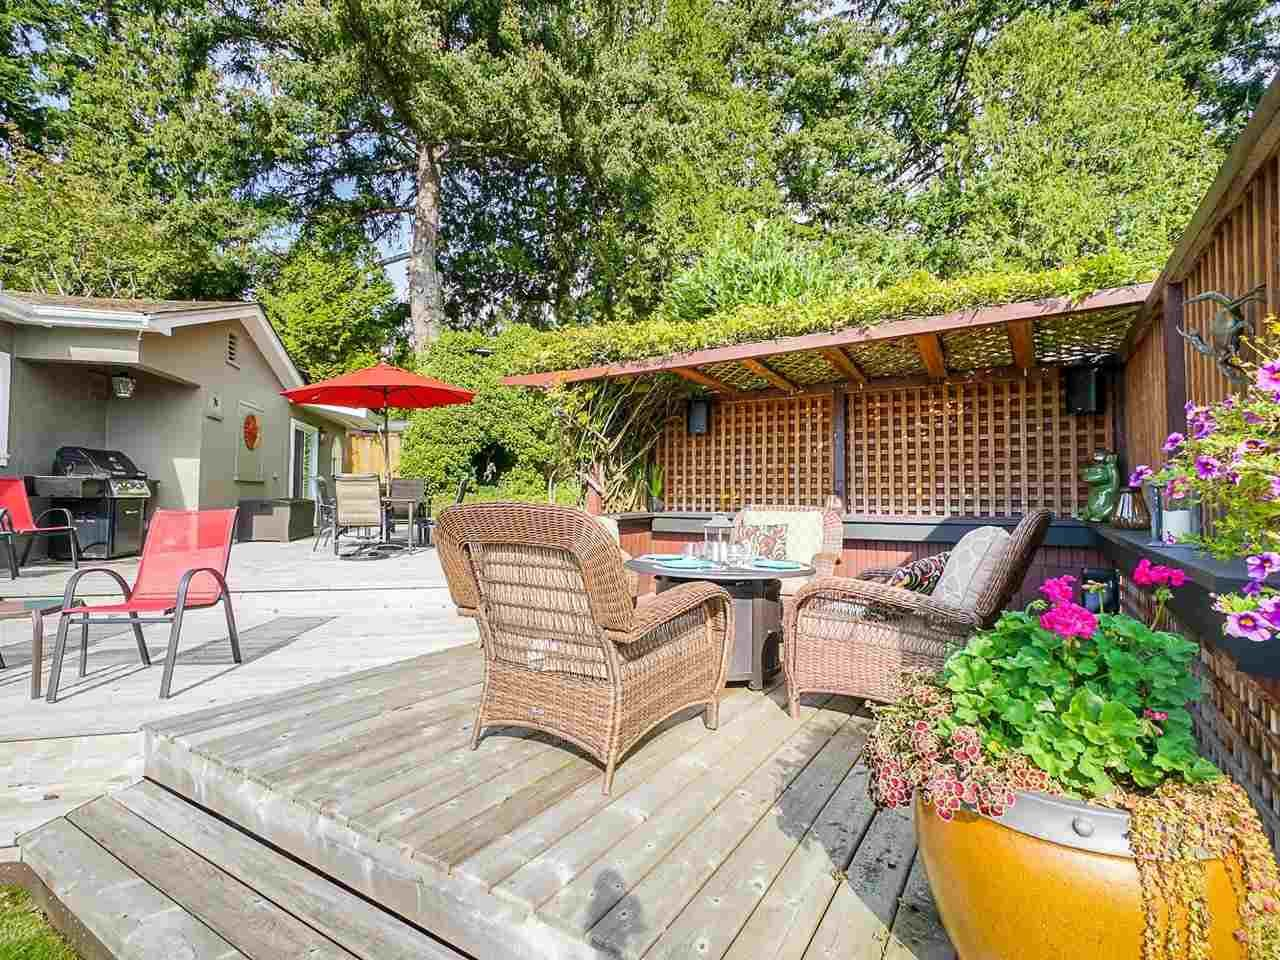 """Main Photo: 912 160 Street in Surrey: King George Corridor House for sale in """"McNally Creek"""" (South Surrey White Rock)  : MLS®# R2509460"""